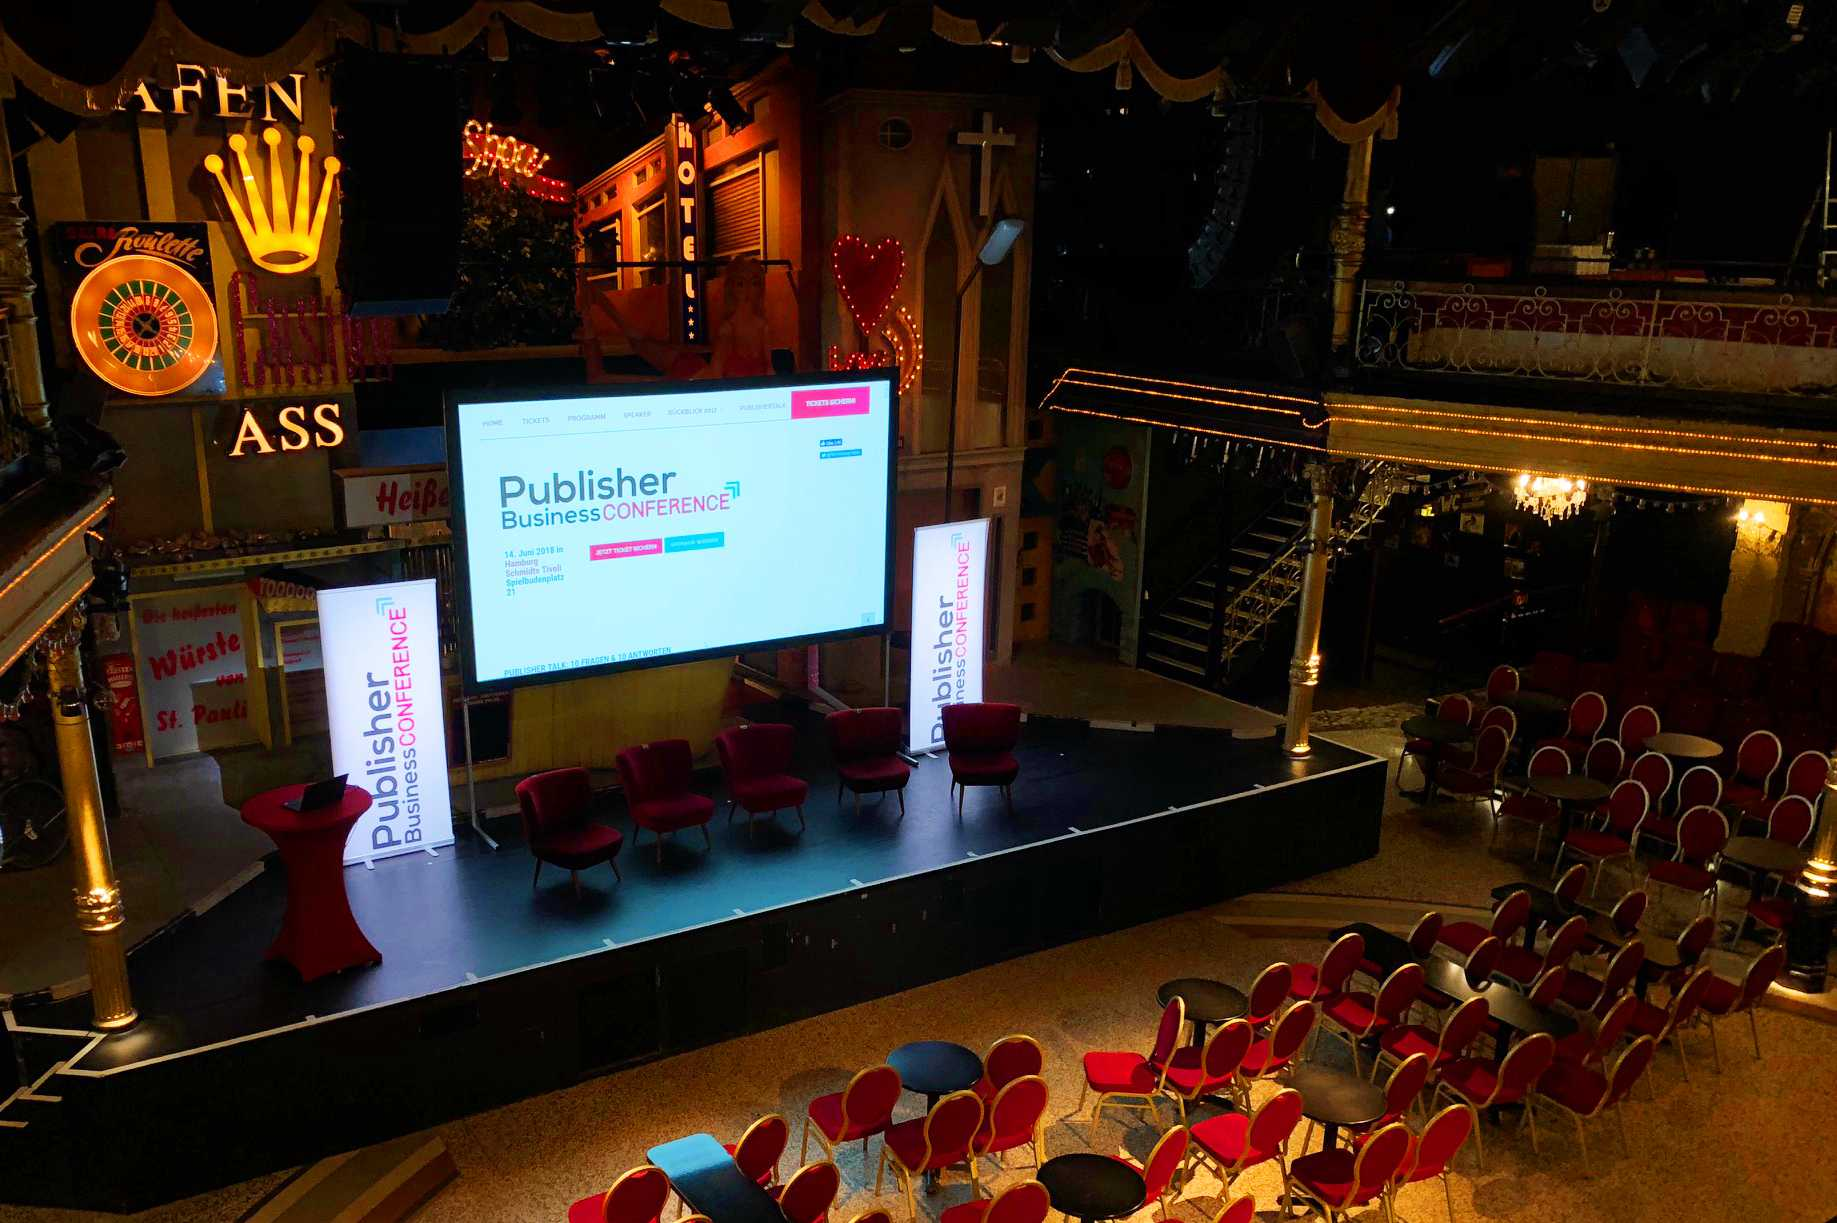 Publisher Business Conference - Traffective